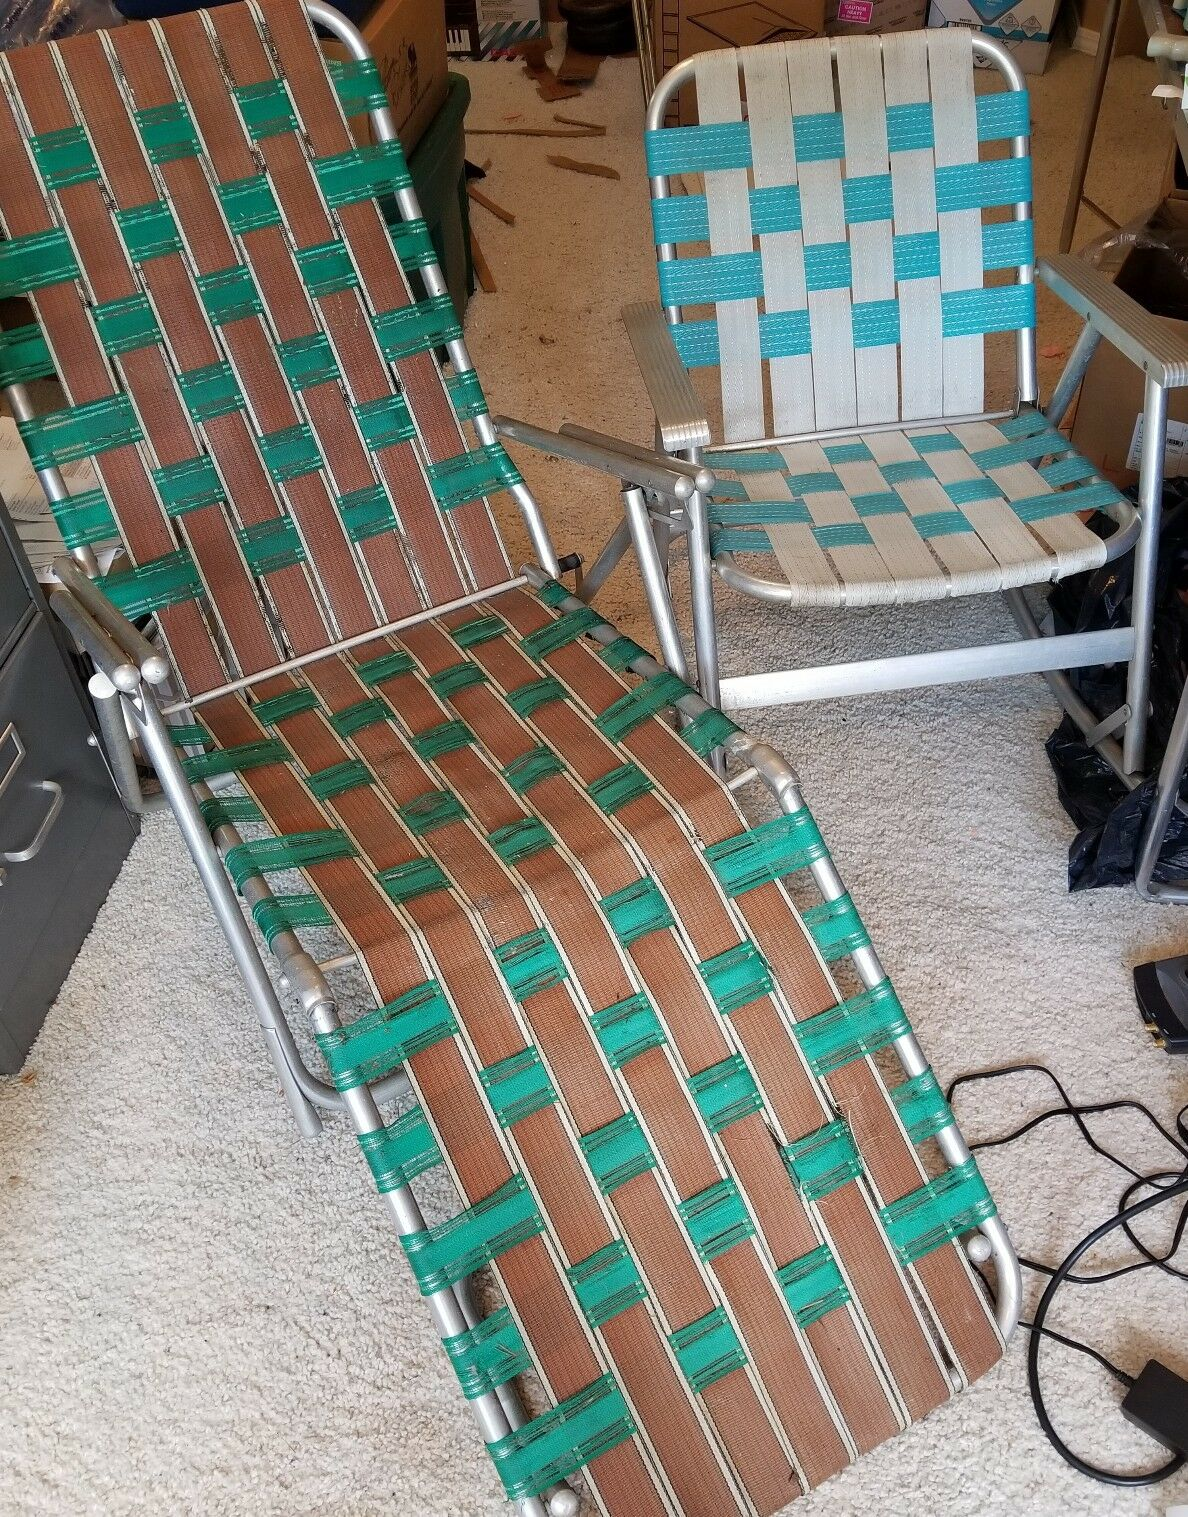 Lot Pair Of Vintage Aluminum Webbed Chairs Chaise Lounge & Rocking Chair used